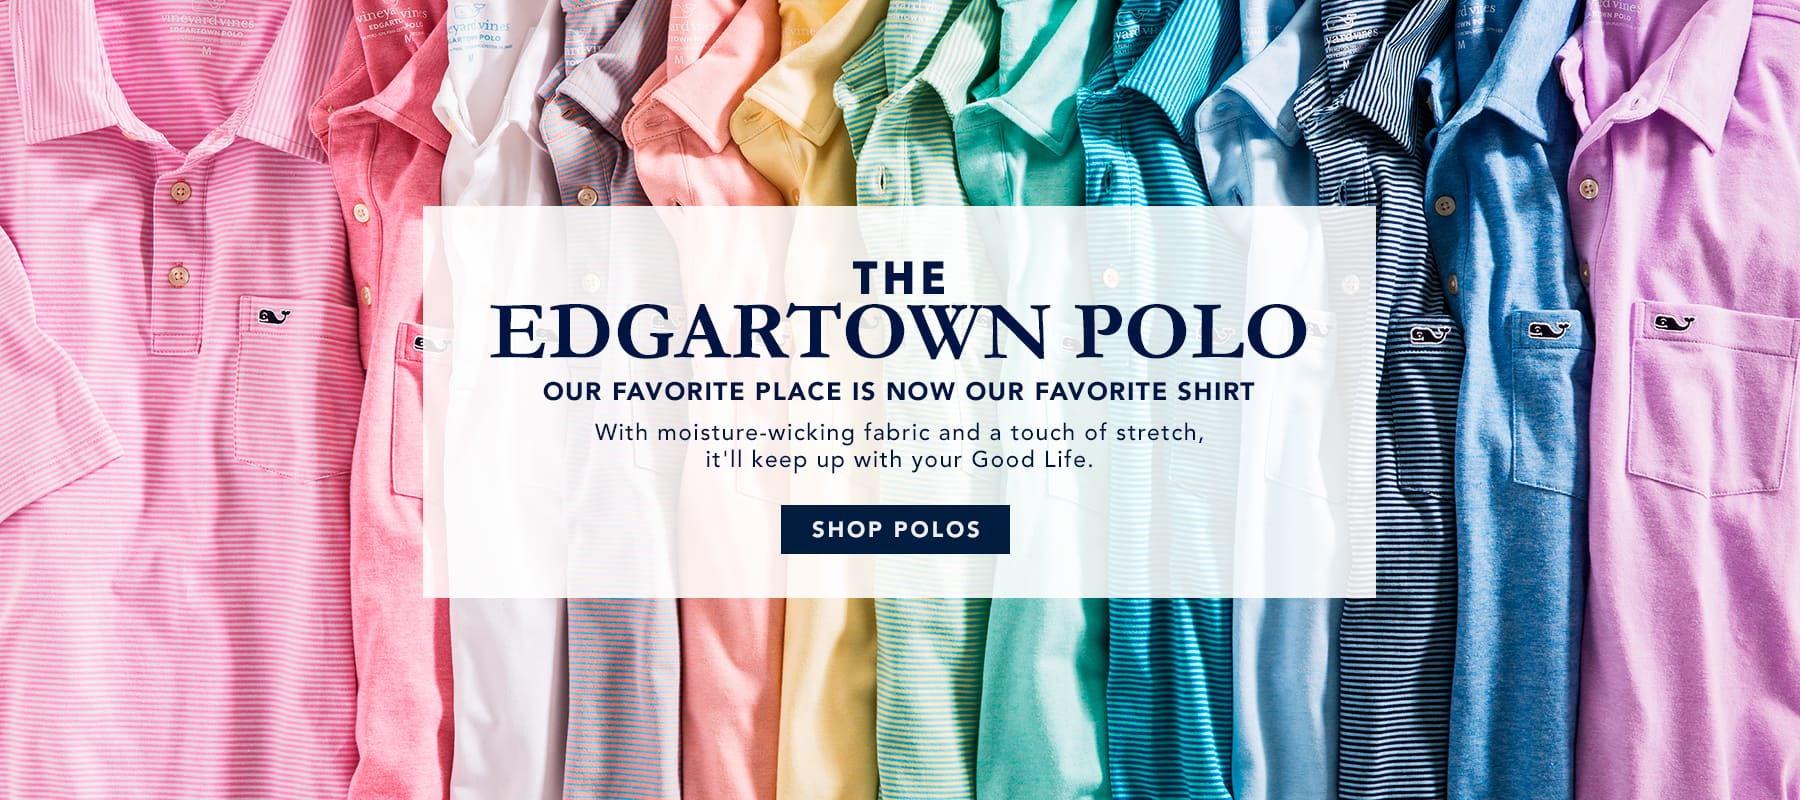 The Edgartown: Our Favorite Place is Now Our Favorite Shirt. With moisture-wicking fabroic and a touch of stretch, it'll keep up with your Good Life. Shop Polos.